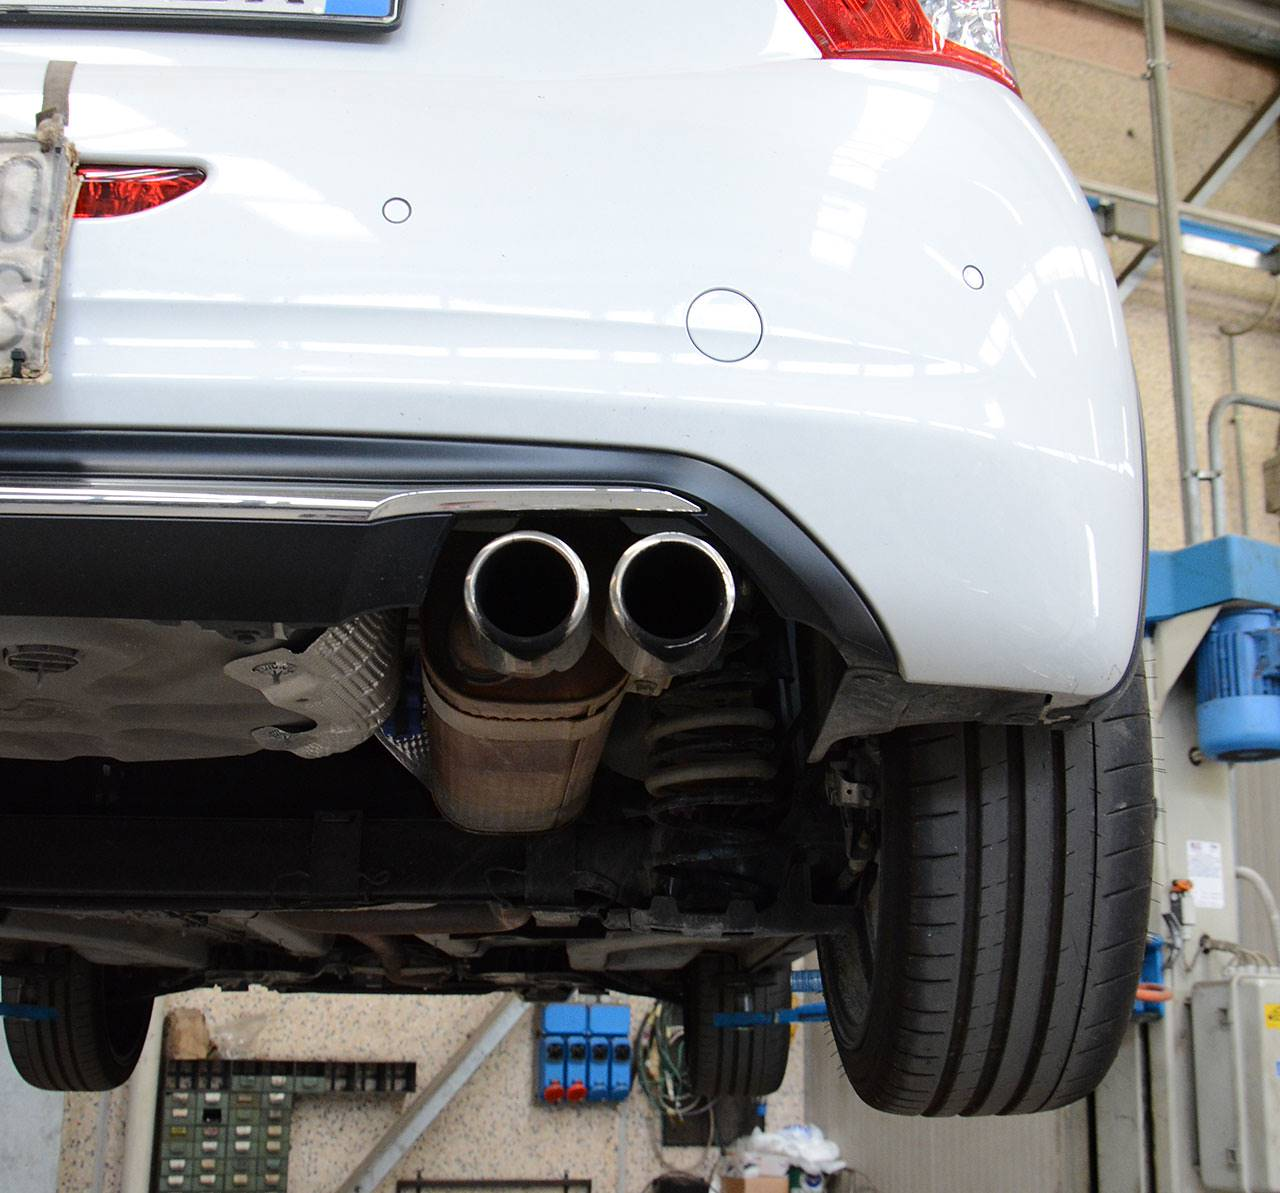 Stock exhaust Peugeot 208 GTI 30th anniversary - tips